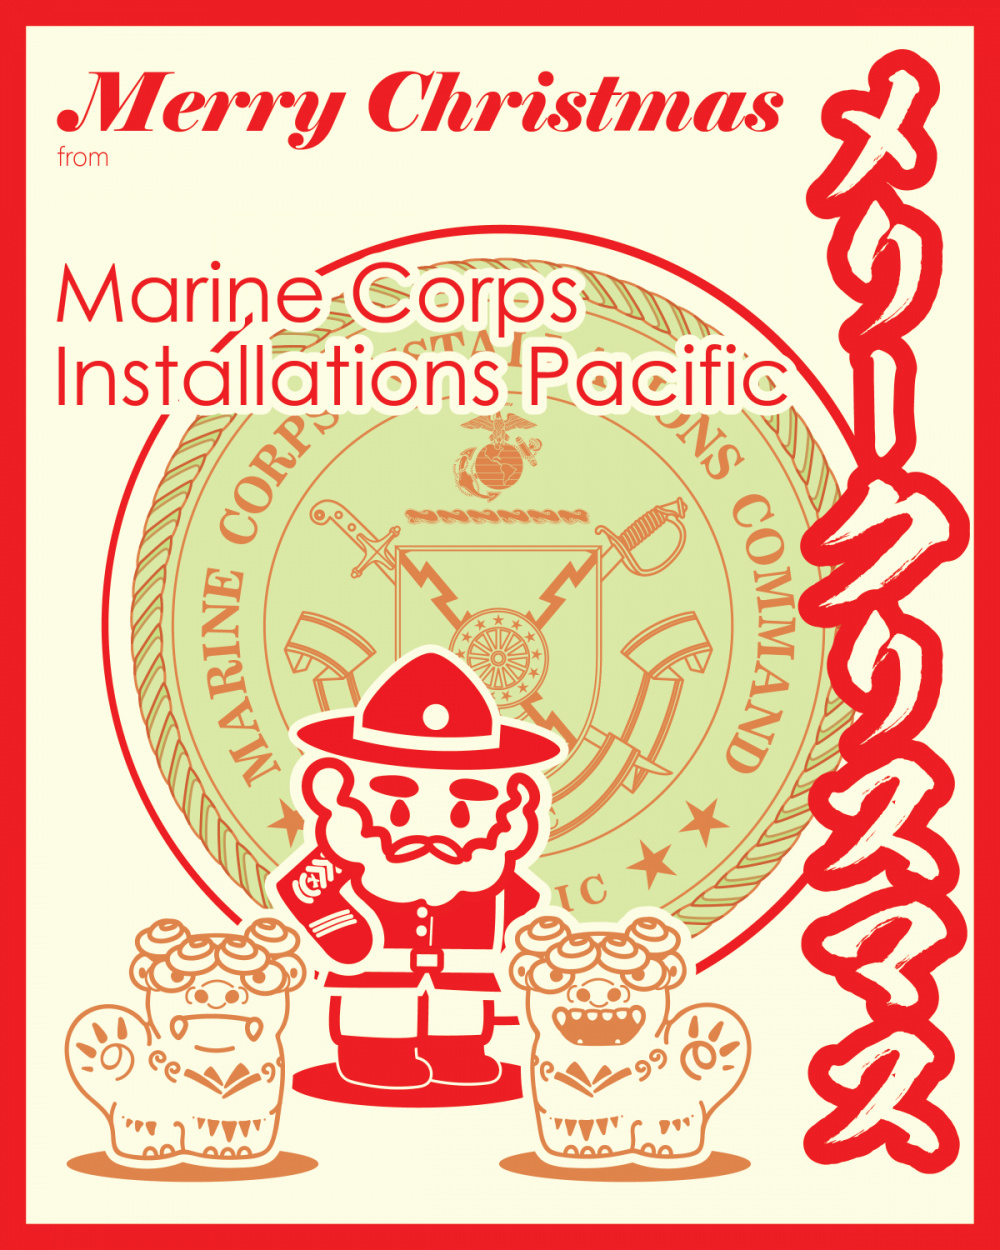 Merry Christmas from Marine Corps Installations Pacific